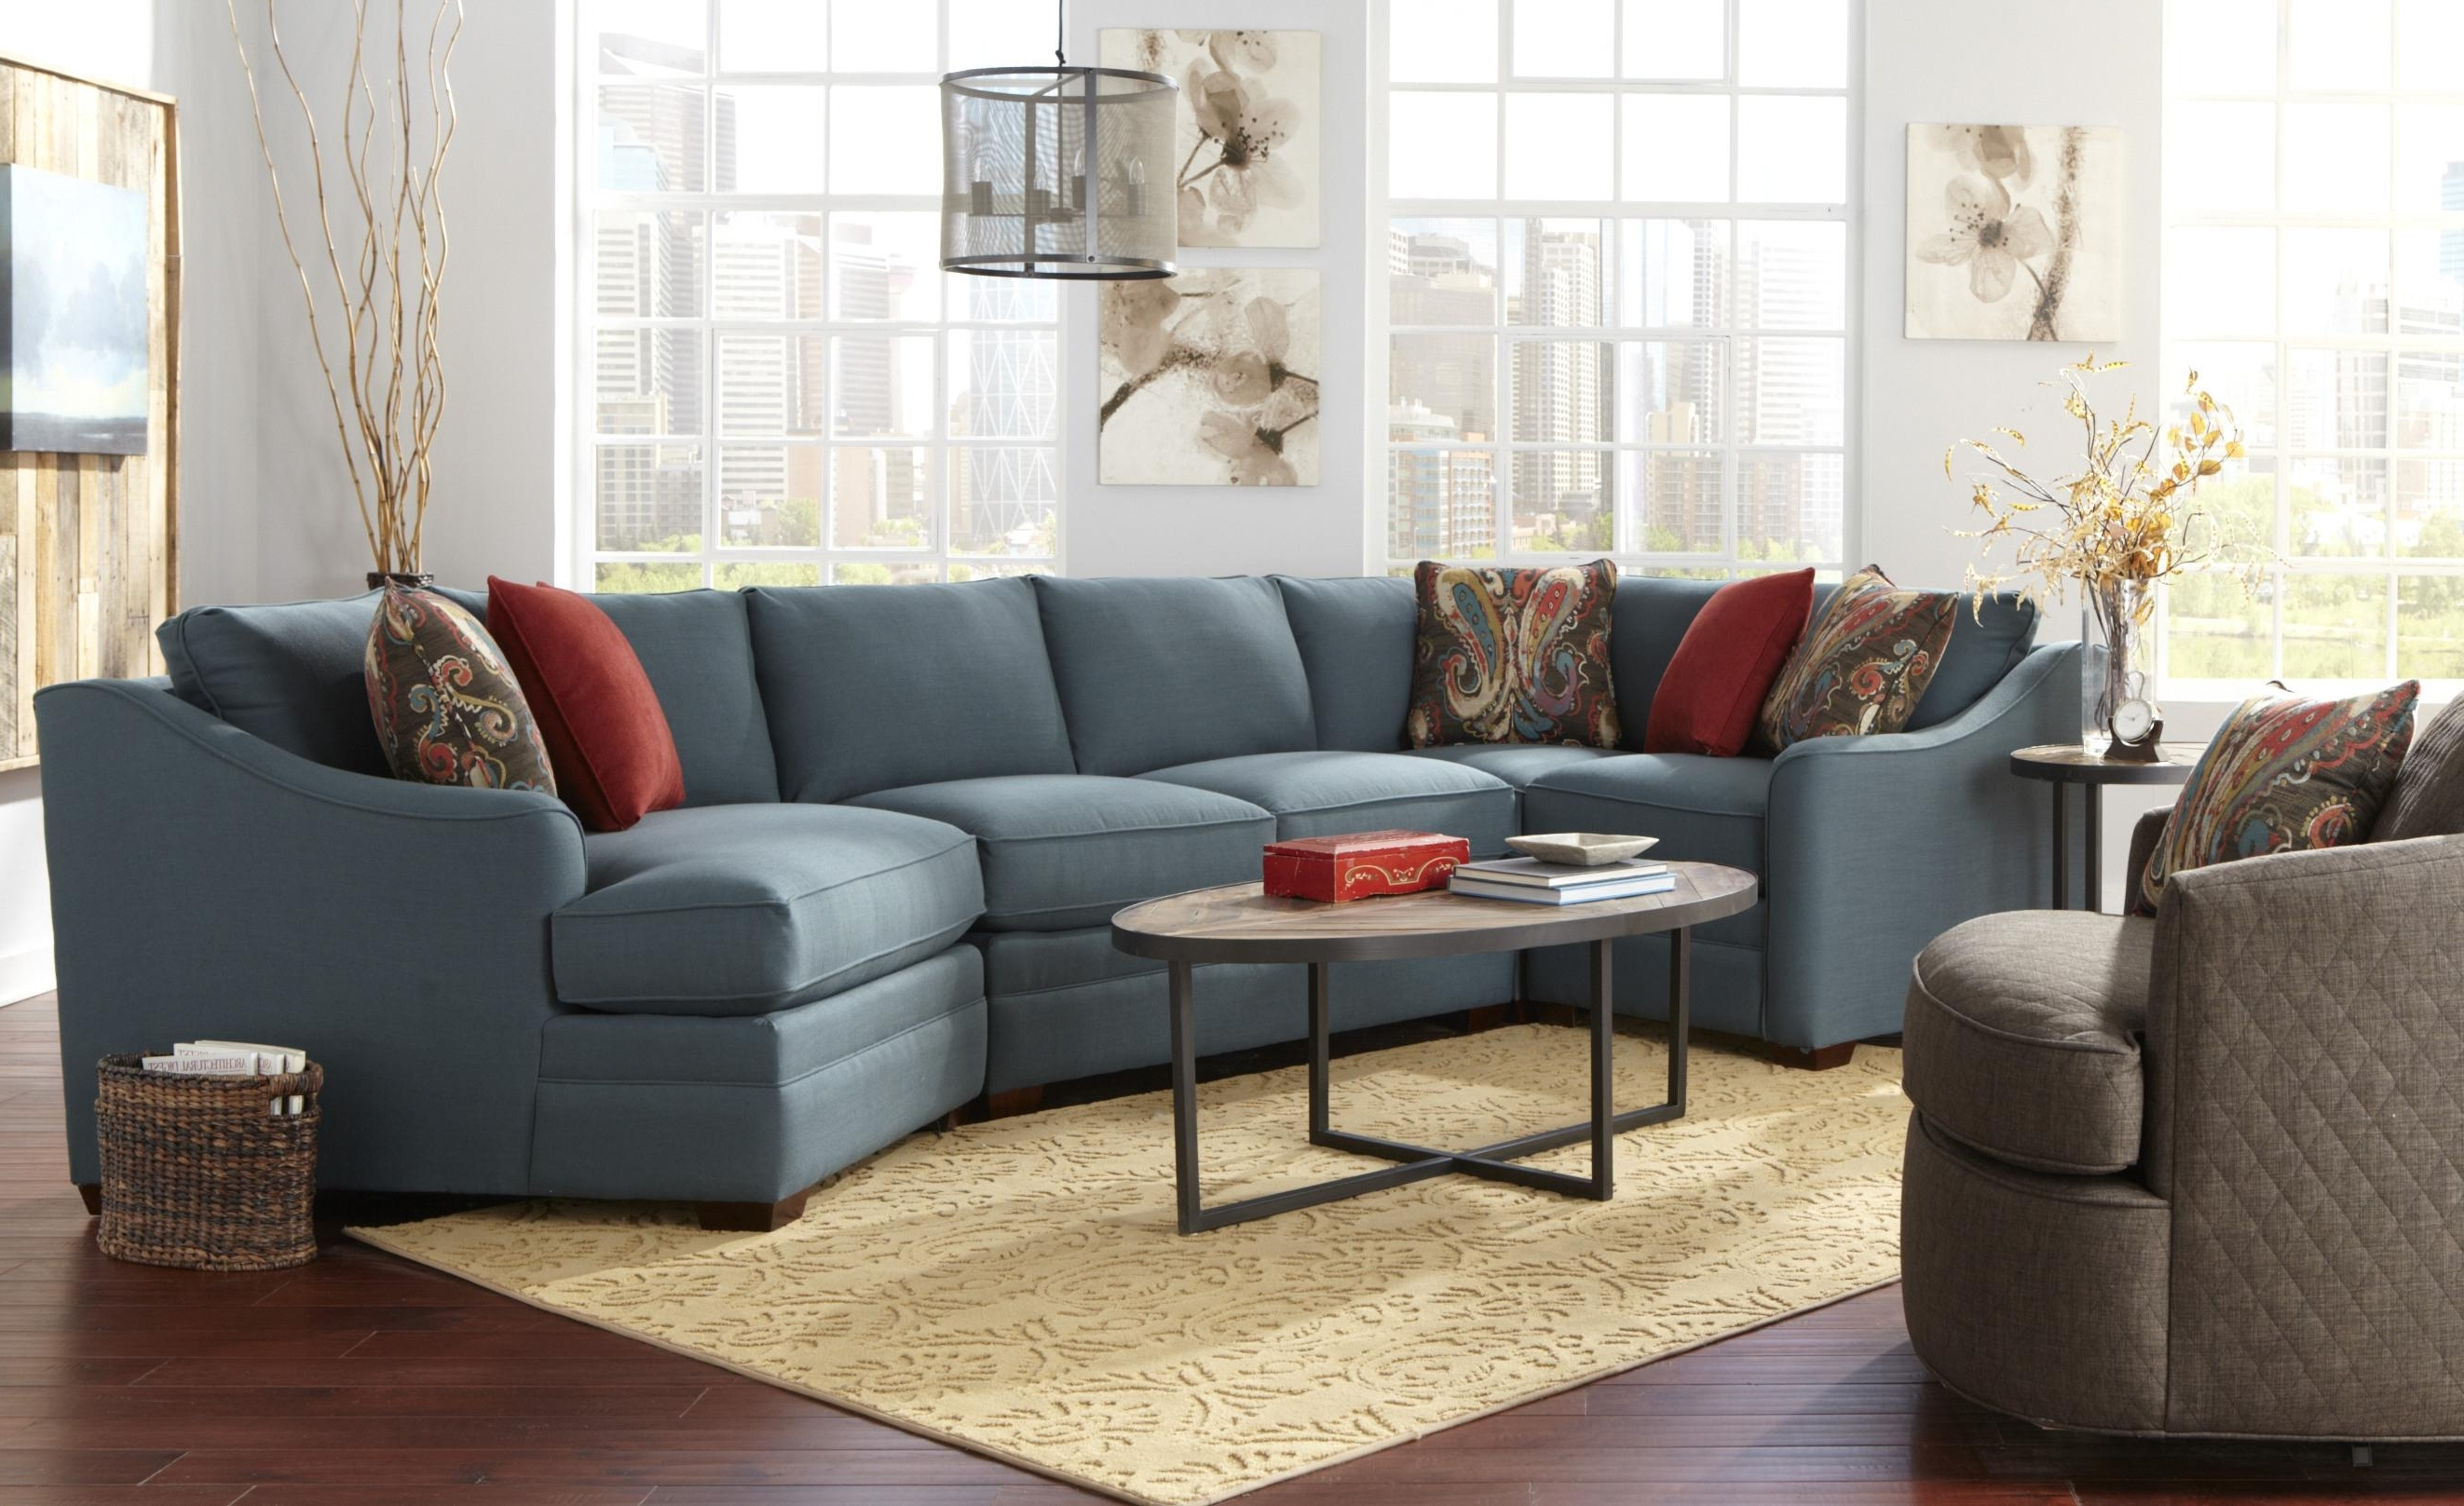 Four Piece <B>Customizable</b> Sectional Sofa With Raf Cuddler Throughout Widely Used Sectional Sofas With Cuddler (View 3 of 15)